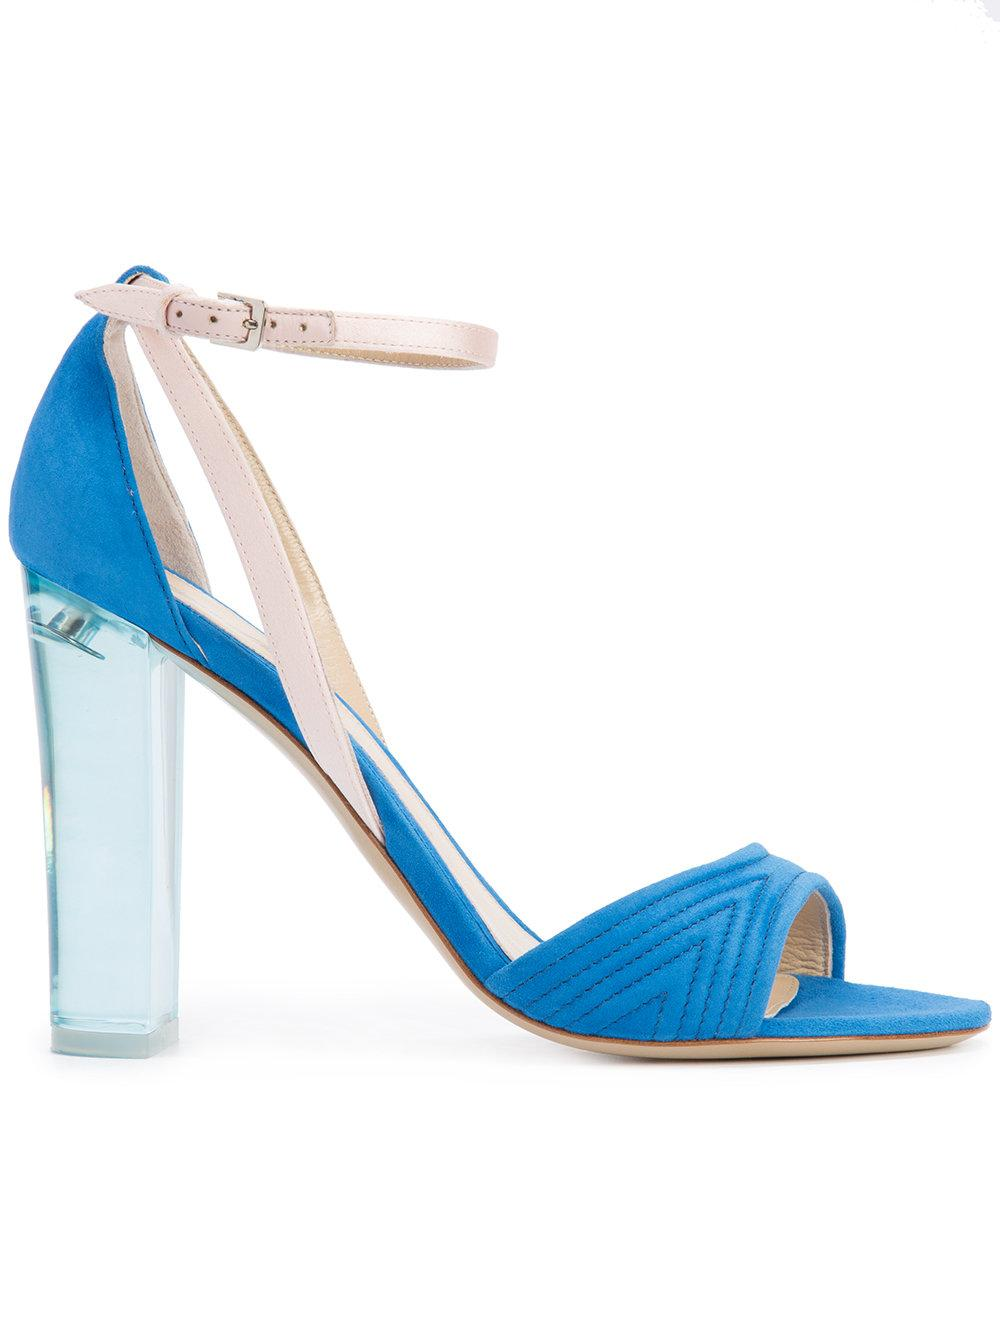 Lyst Monique Lhuillier Clear Heel Sandals In Blue